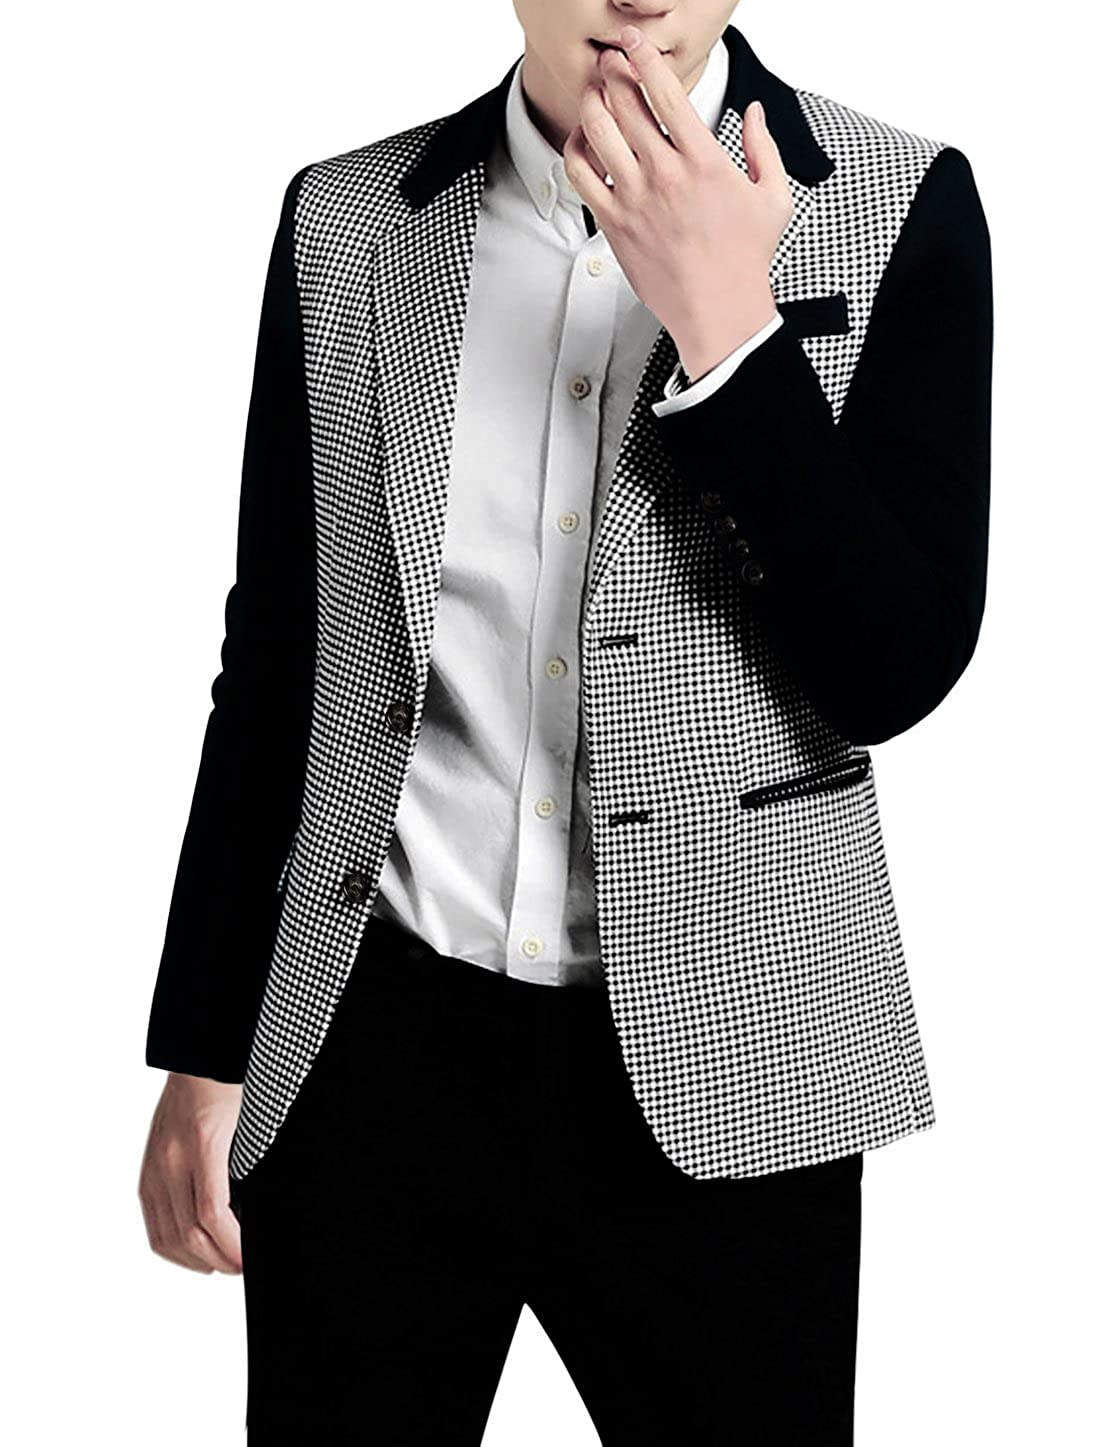 Men's Vintage Style Suits, Classic Suits uxcell Men Houndstooth Long Sleeve Padded Shoulder Single Breasted Blazer $30.93 AT vintagedancer.com